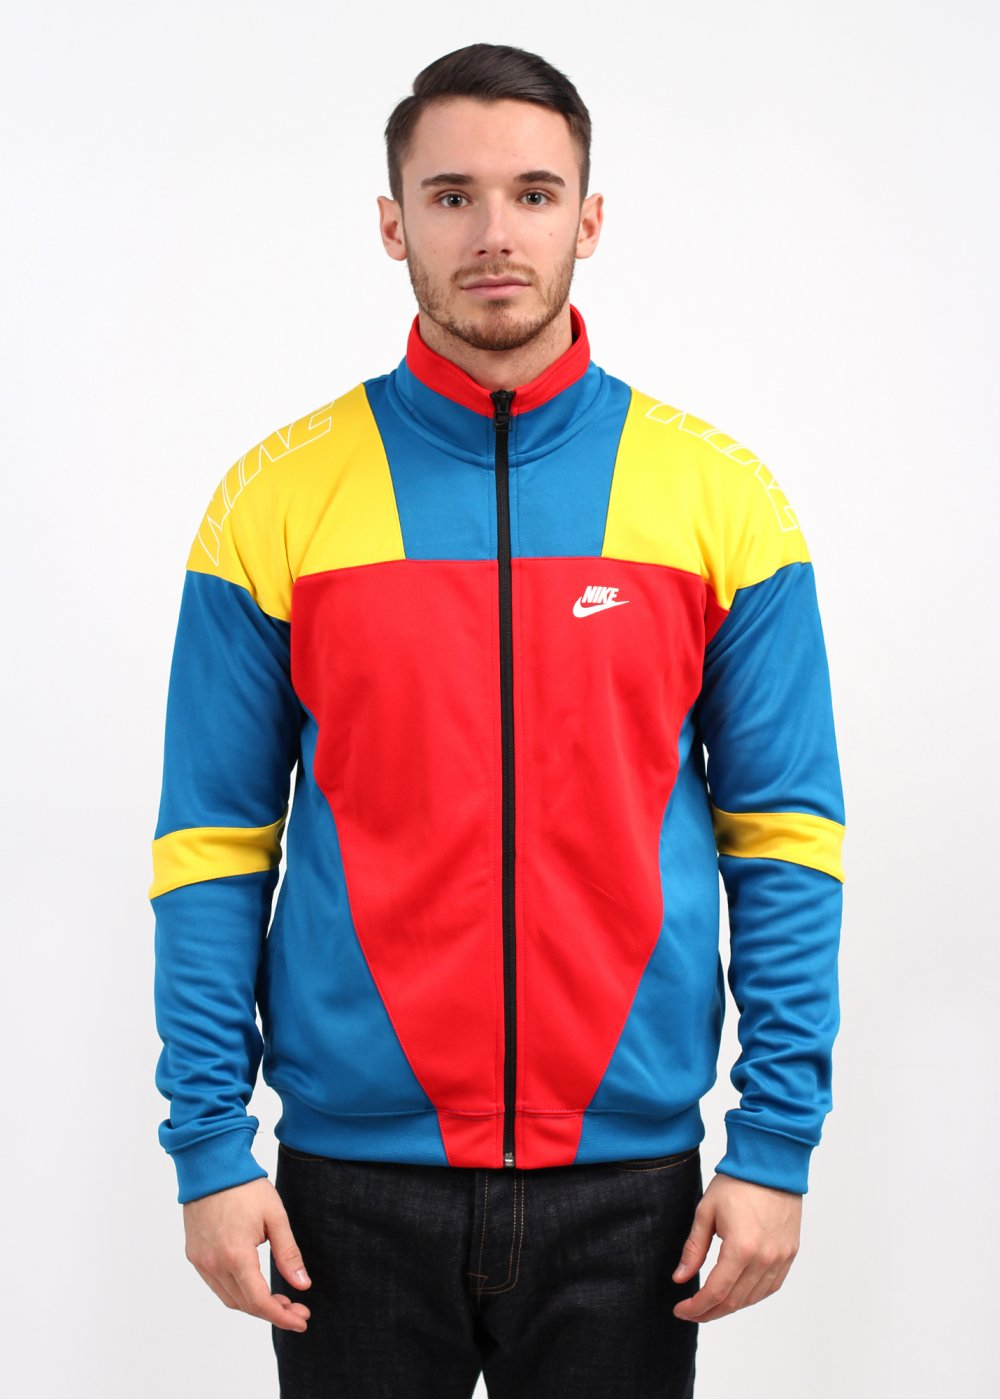 Nike Colourblock Track Jacket Red Blue Yellow